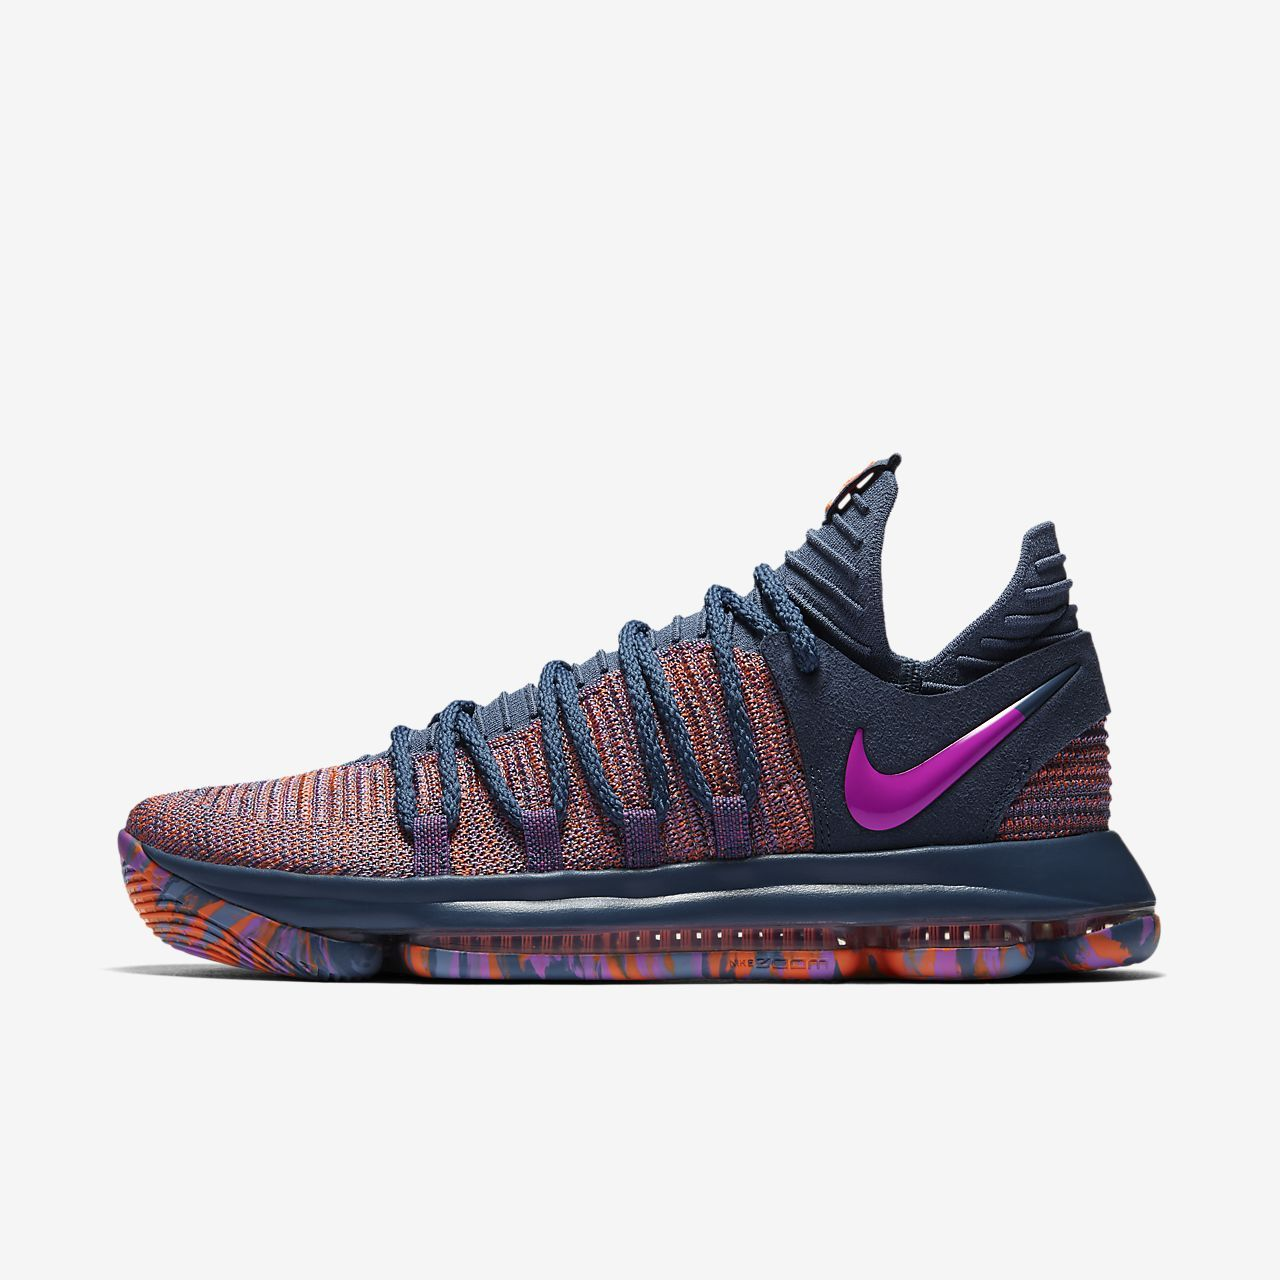 reputable site 5c54e d01f1 Nike Zoom KDX AS Basketball Shoe | Nike in 2019 | Basket ...